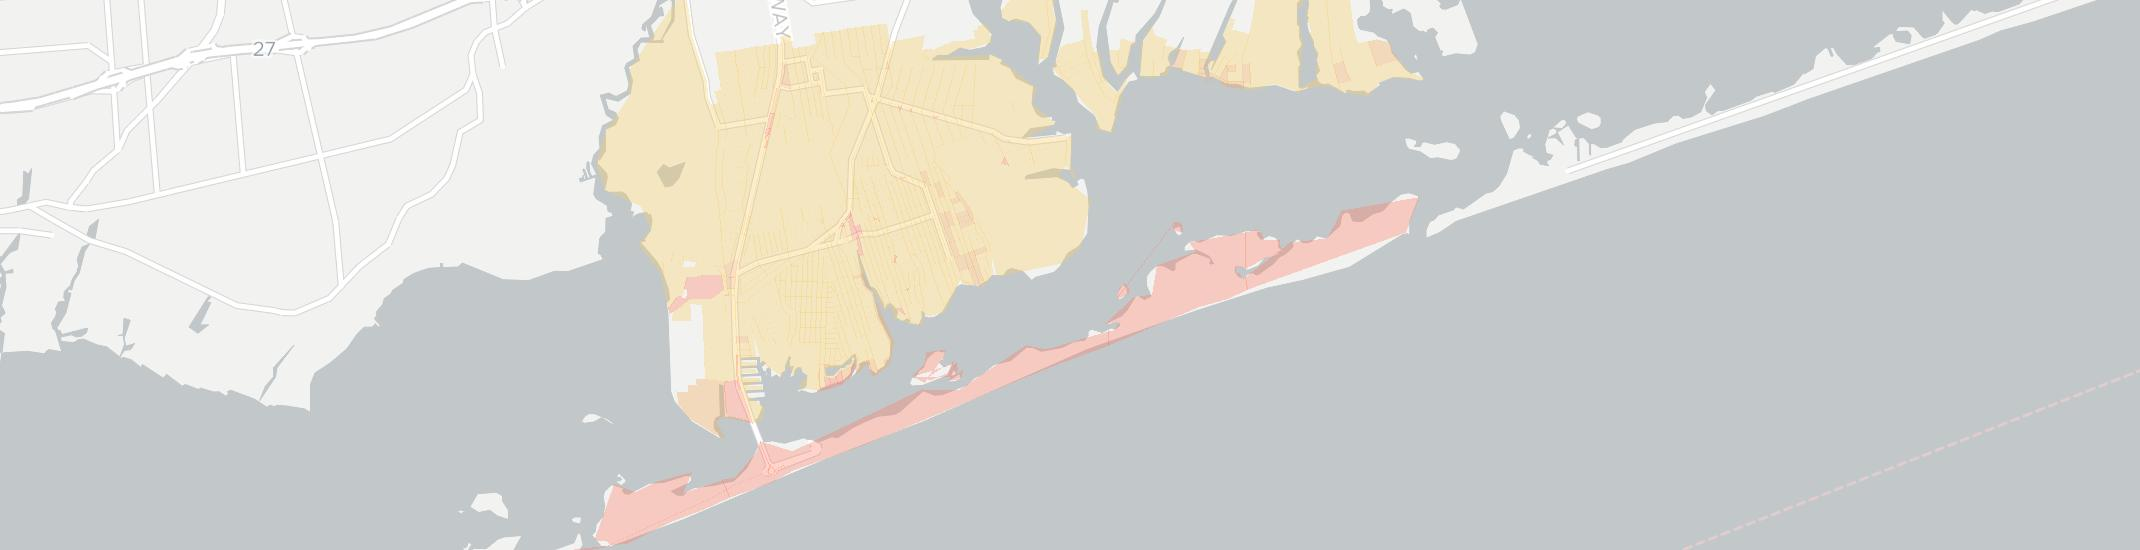 Mastic Beach Internet Competition Map. Click for interactive map.